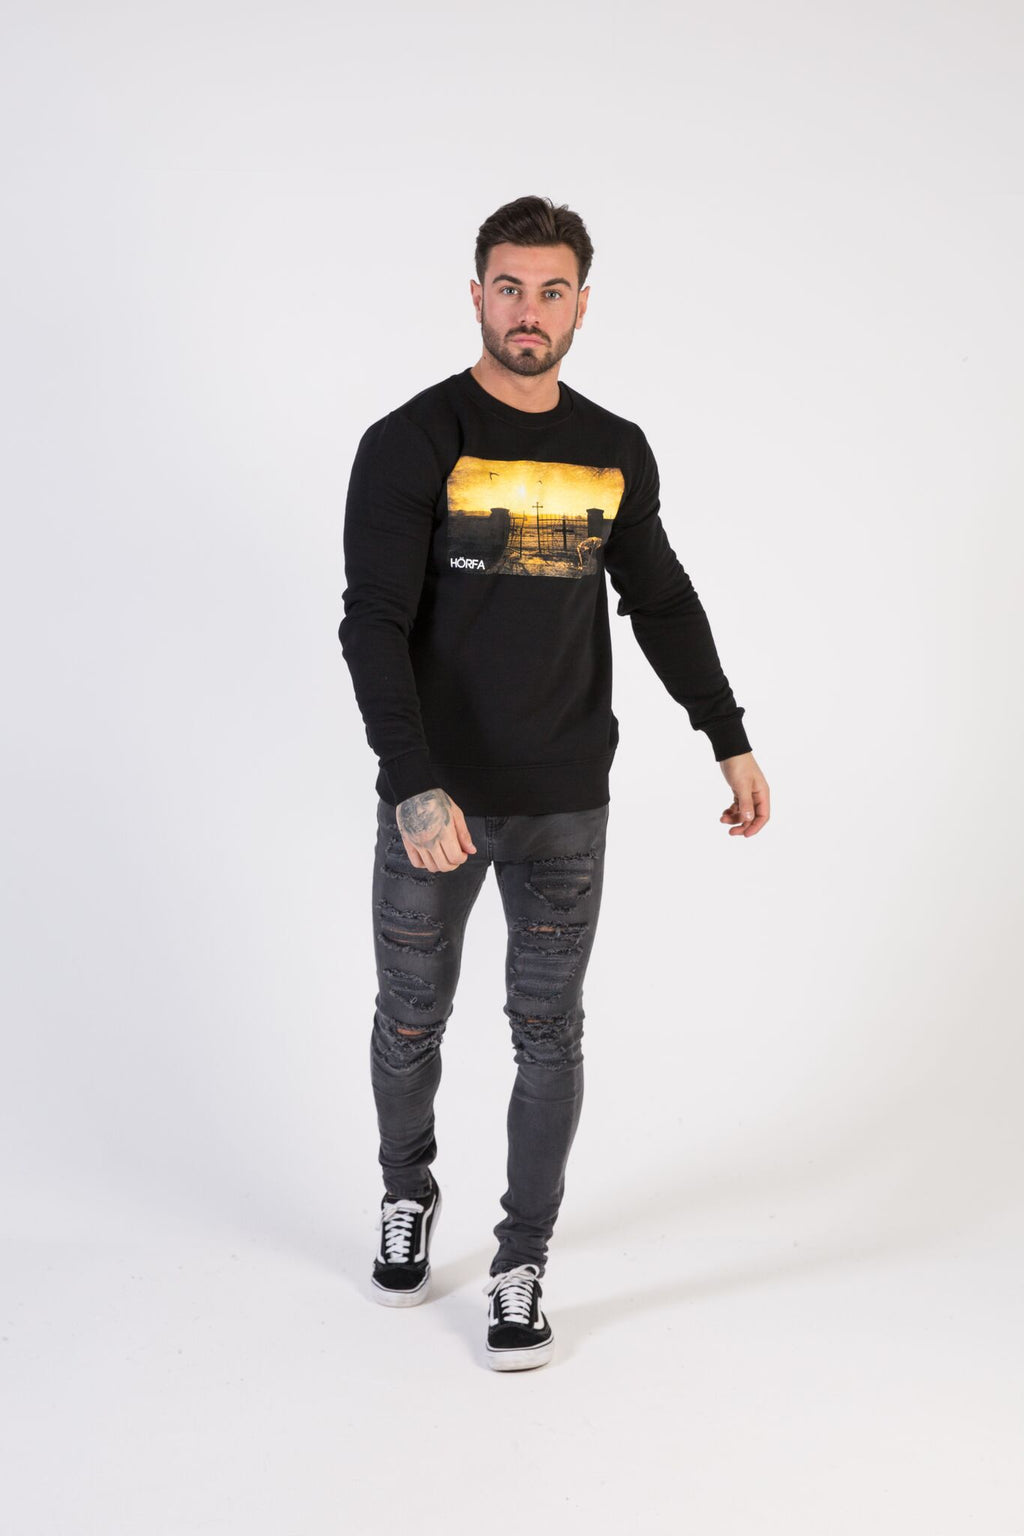 DAY OF THE DEAD Sweatshirt - HÖRFA is a men's global fashion brand that provides products such as Fashionable Watches, Wallets, Sunglasses, Belts, Beard and Male Grooming Products